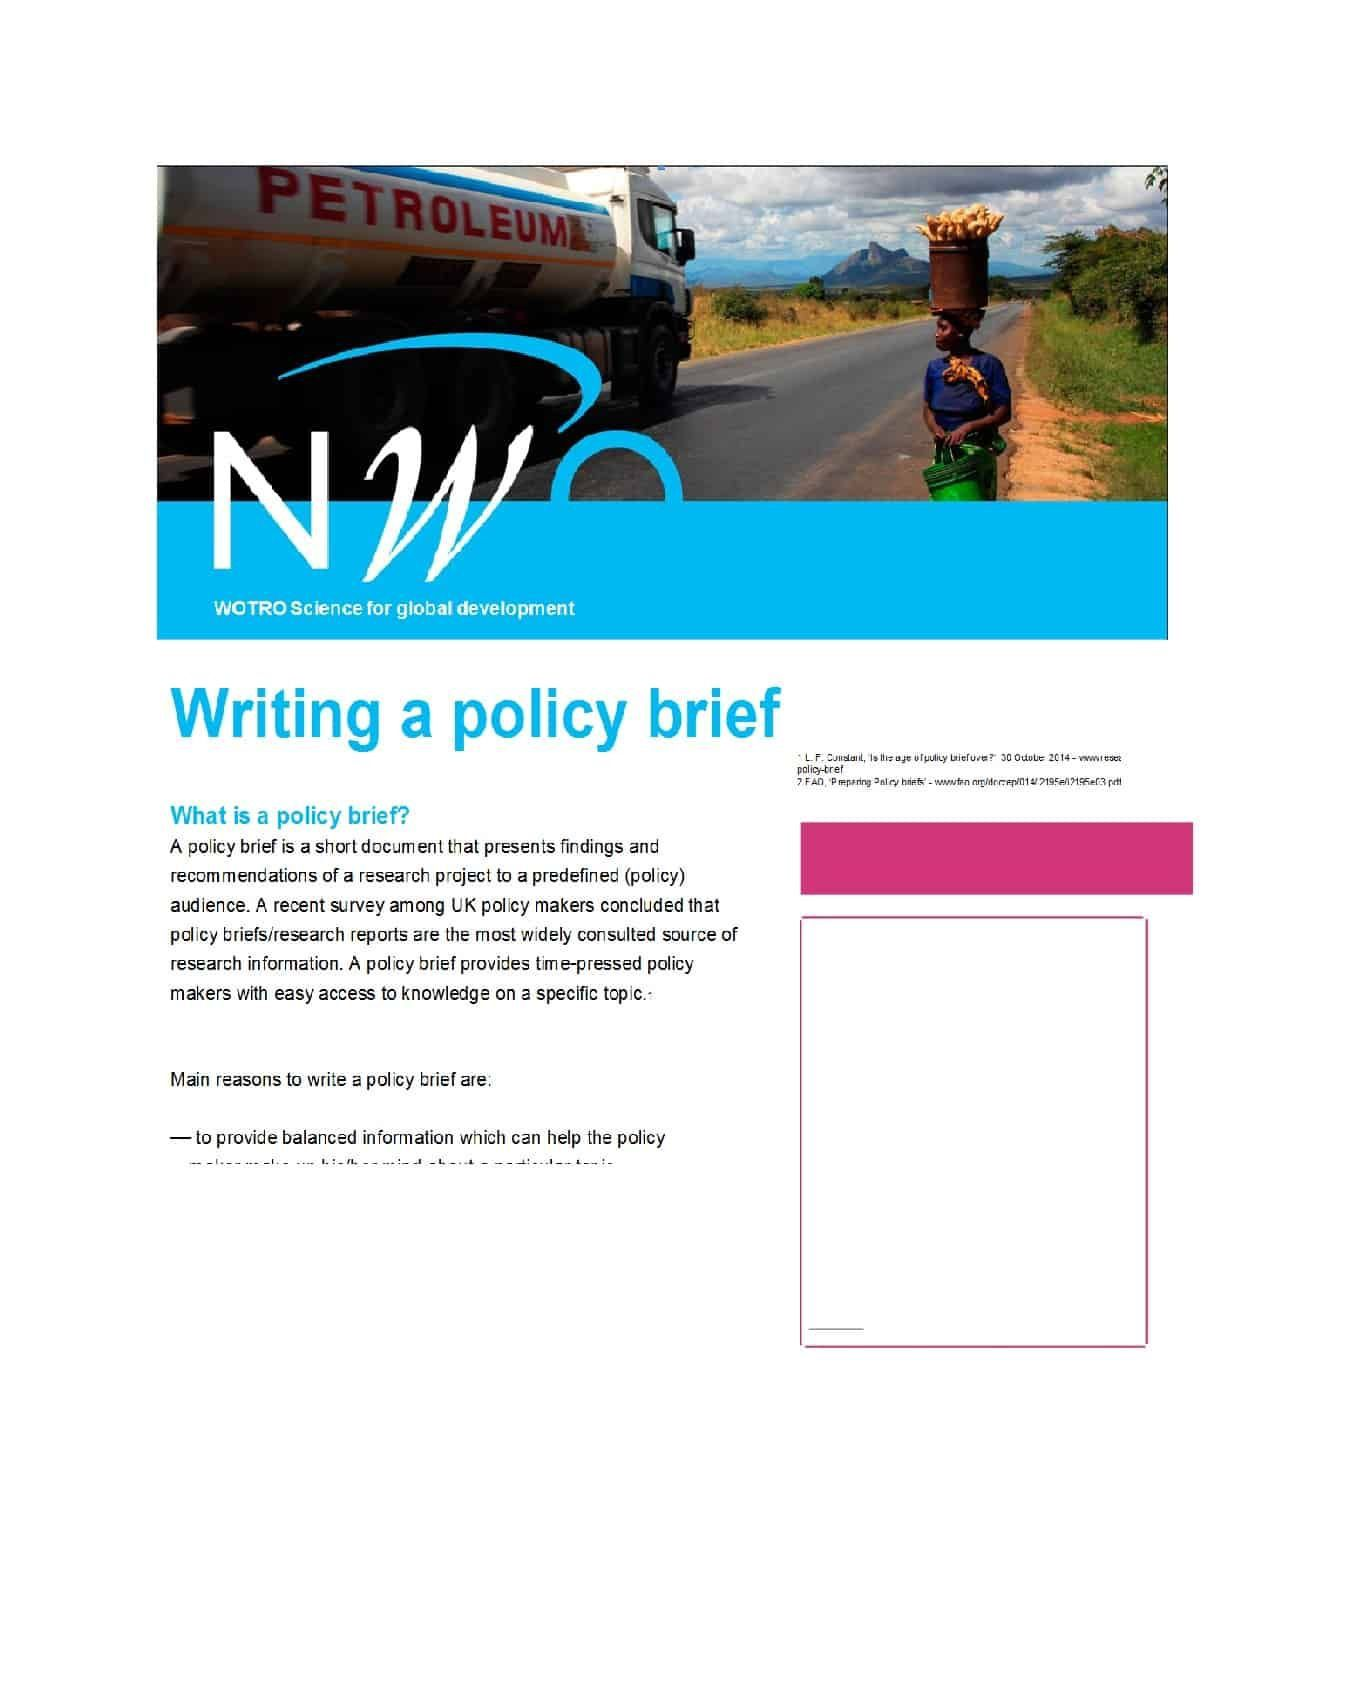 000 Incredible Policy Brief Template Microsoft Word Example  And ProcedureFull